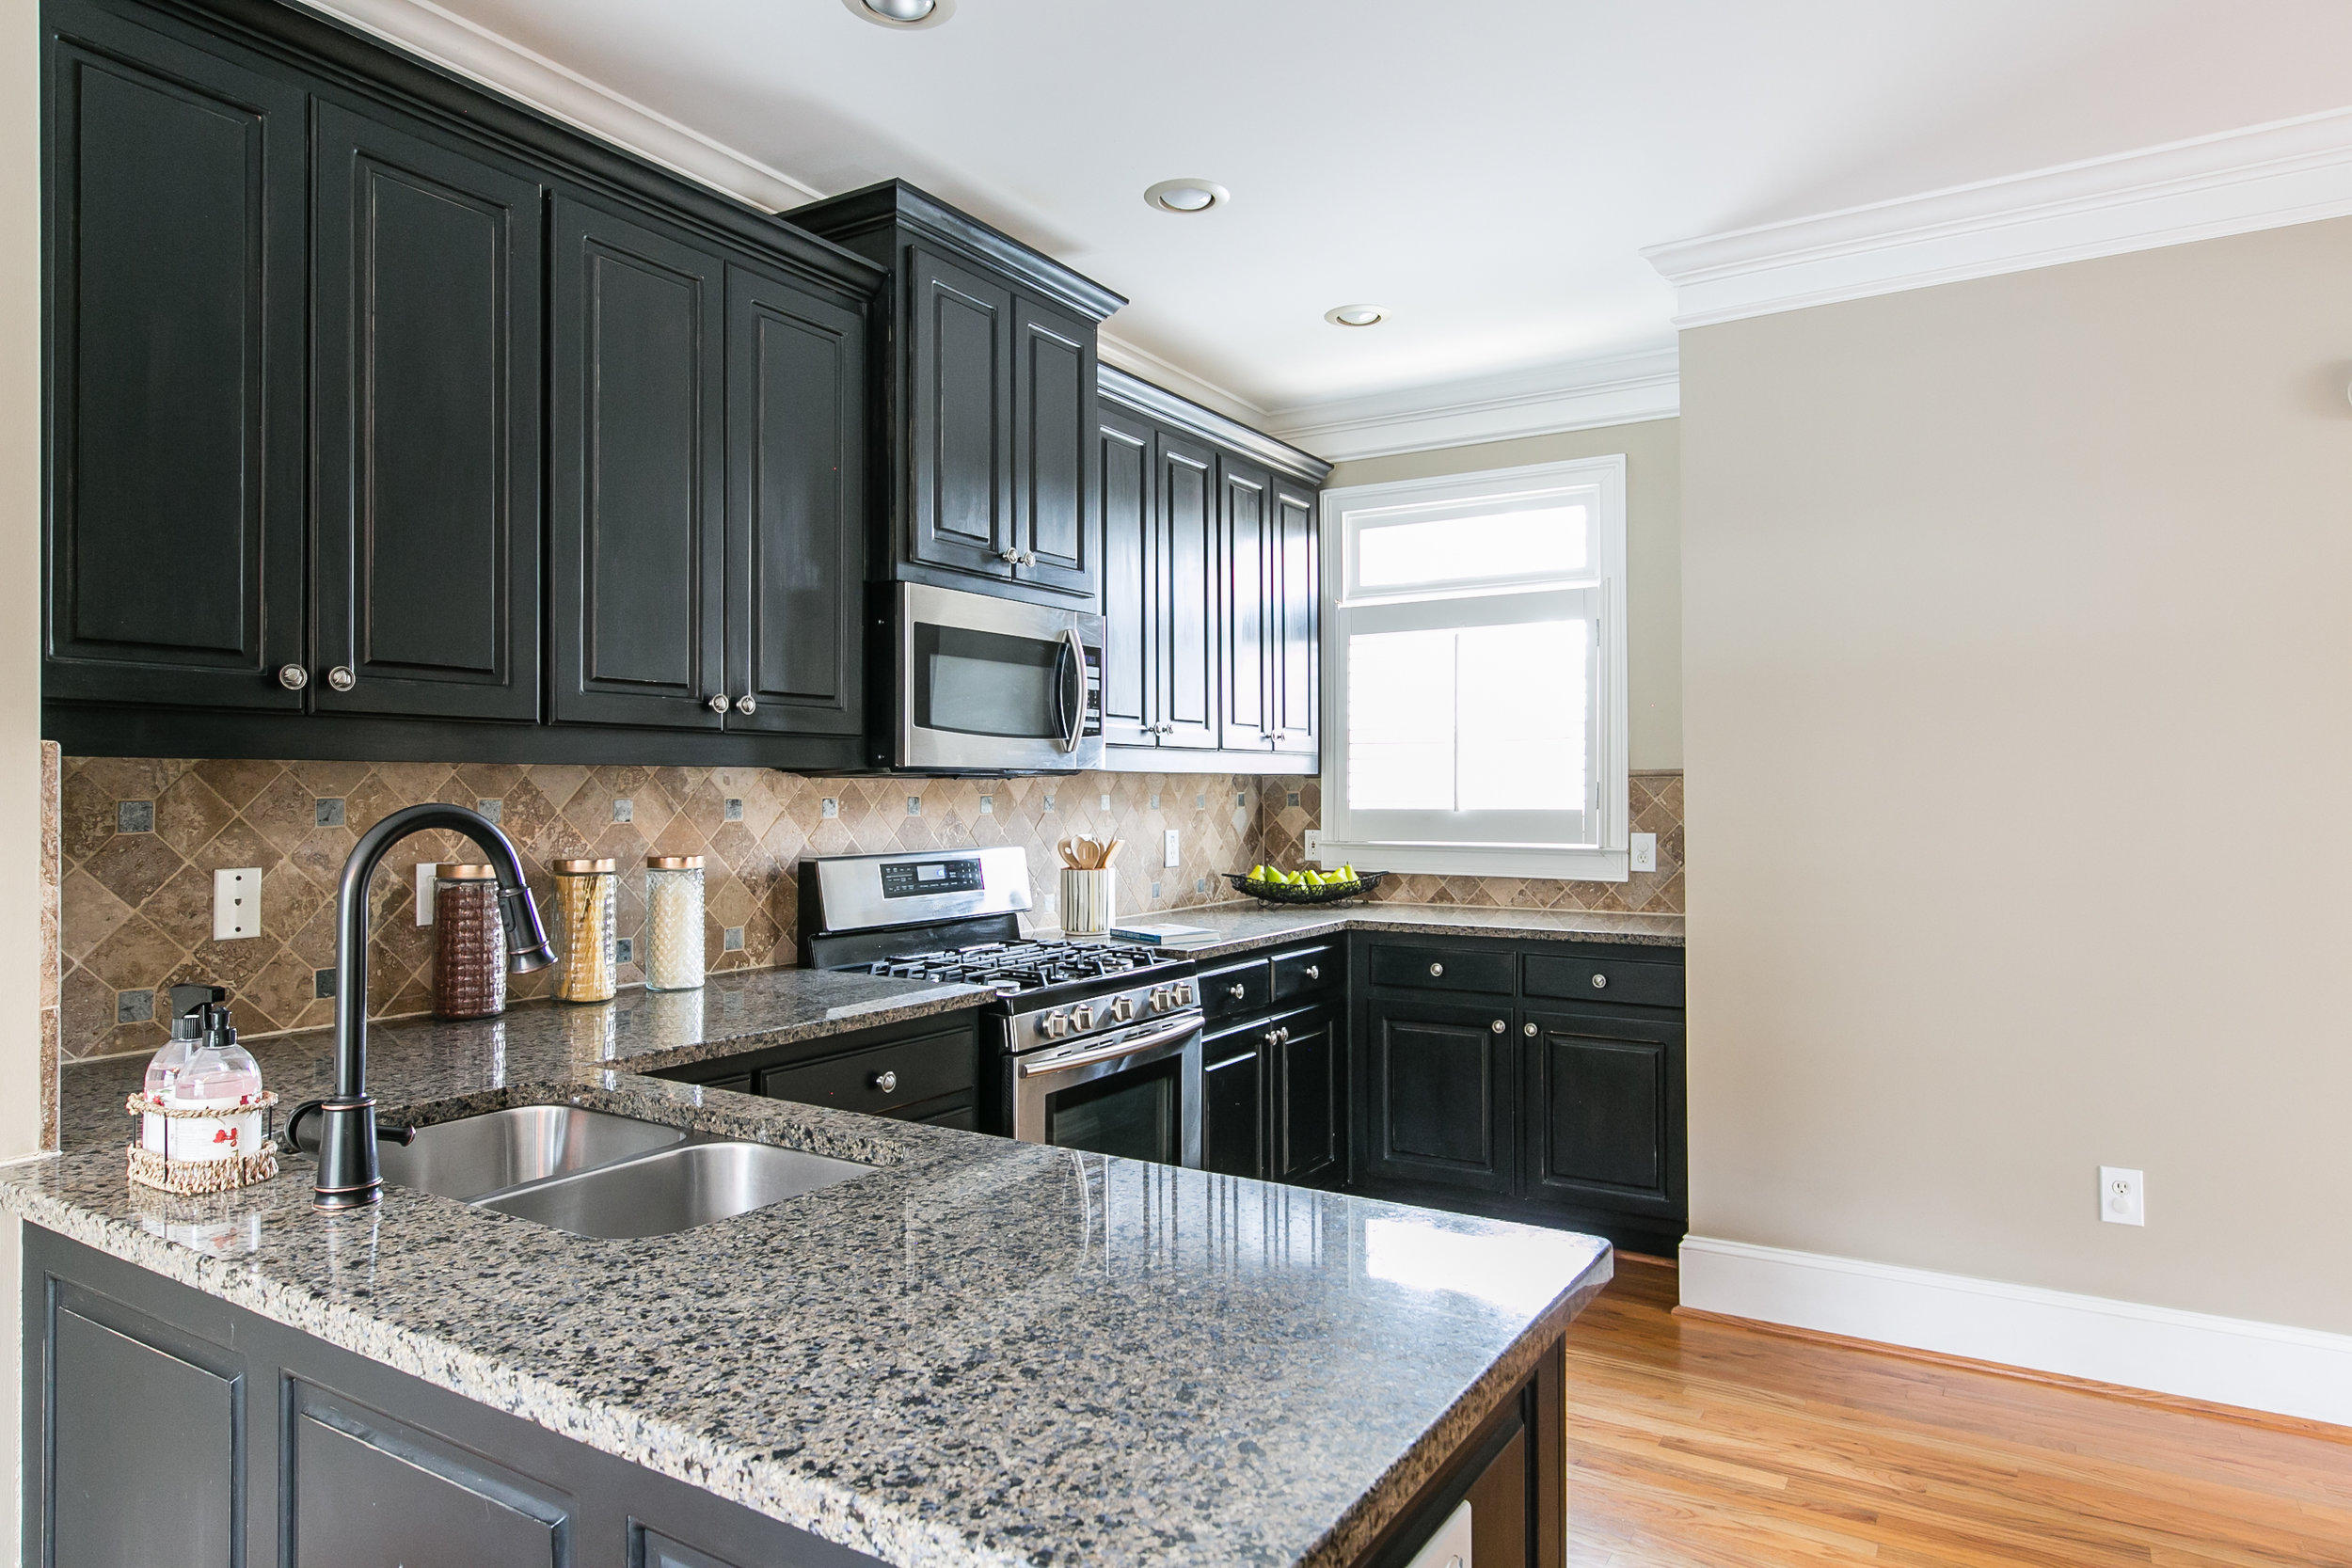 2456 Piedmont Unit 2-Kitchen 2.jpg